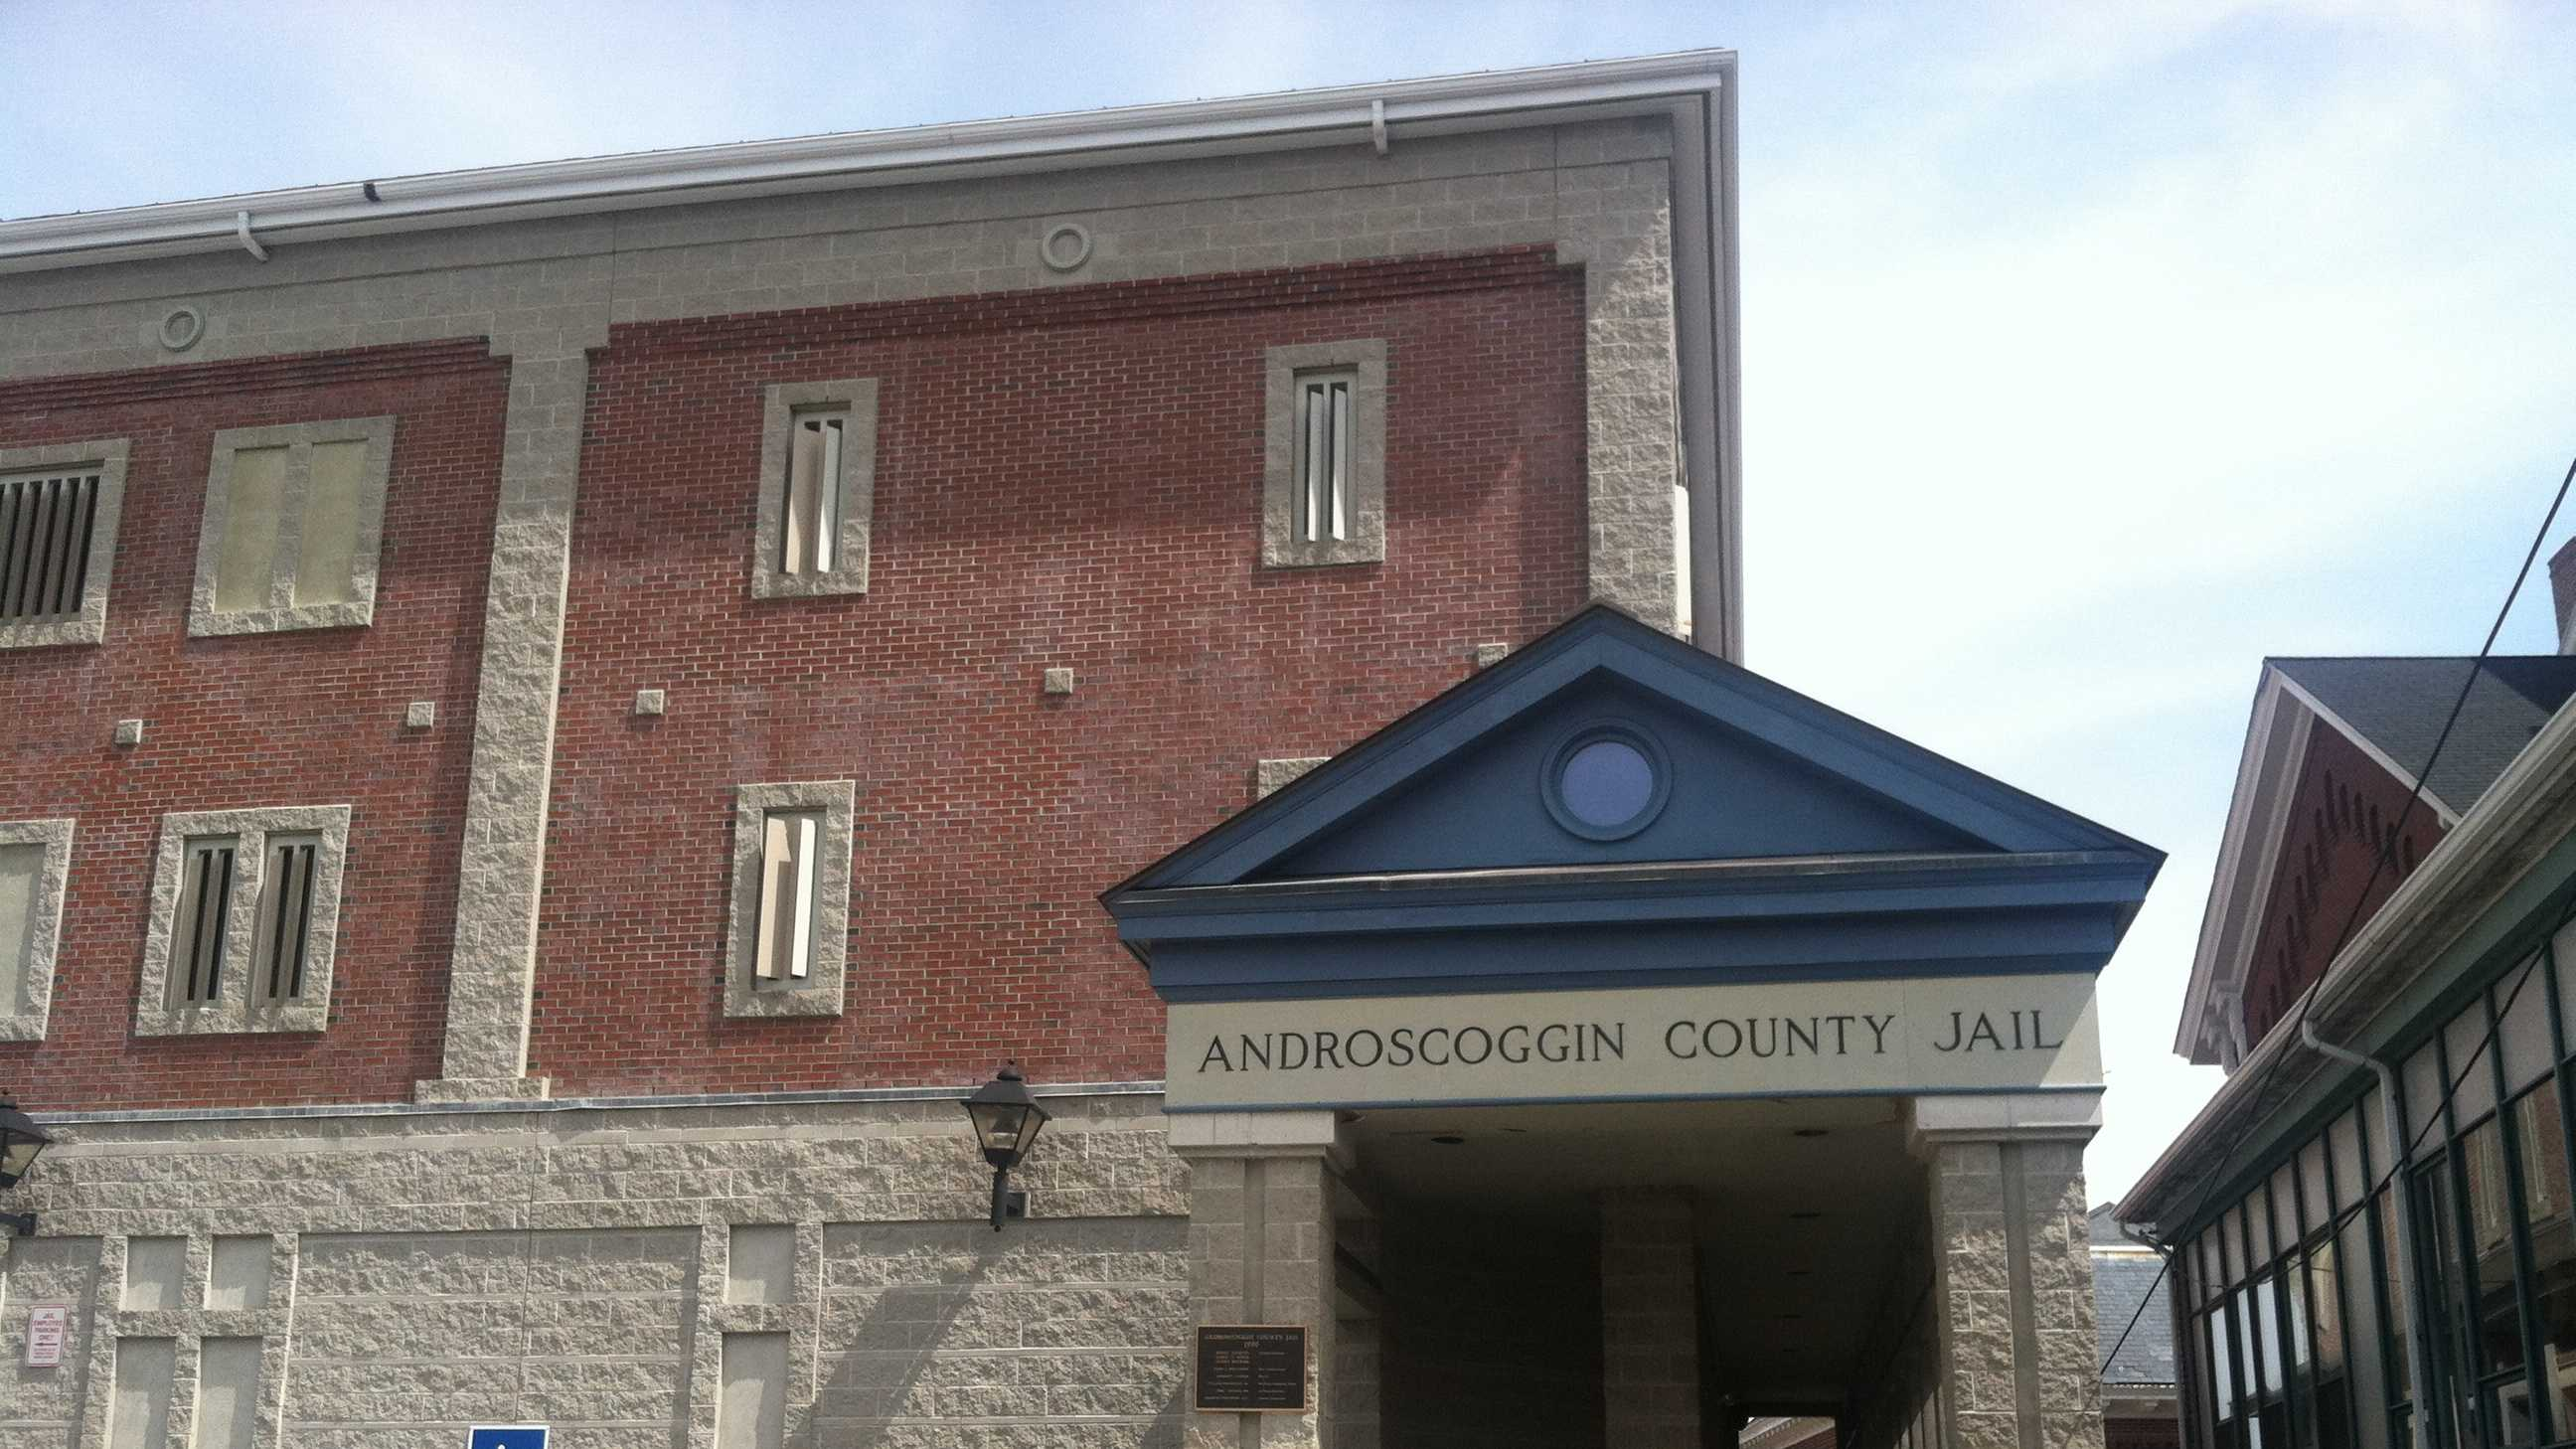 Androscoggin County Jail